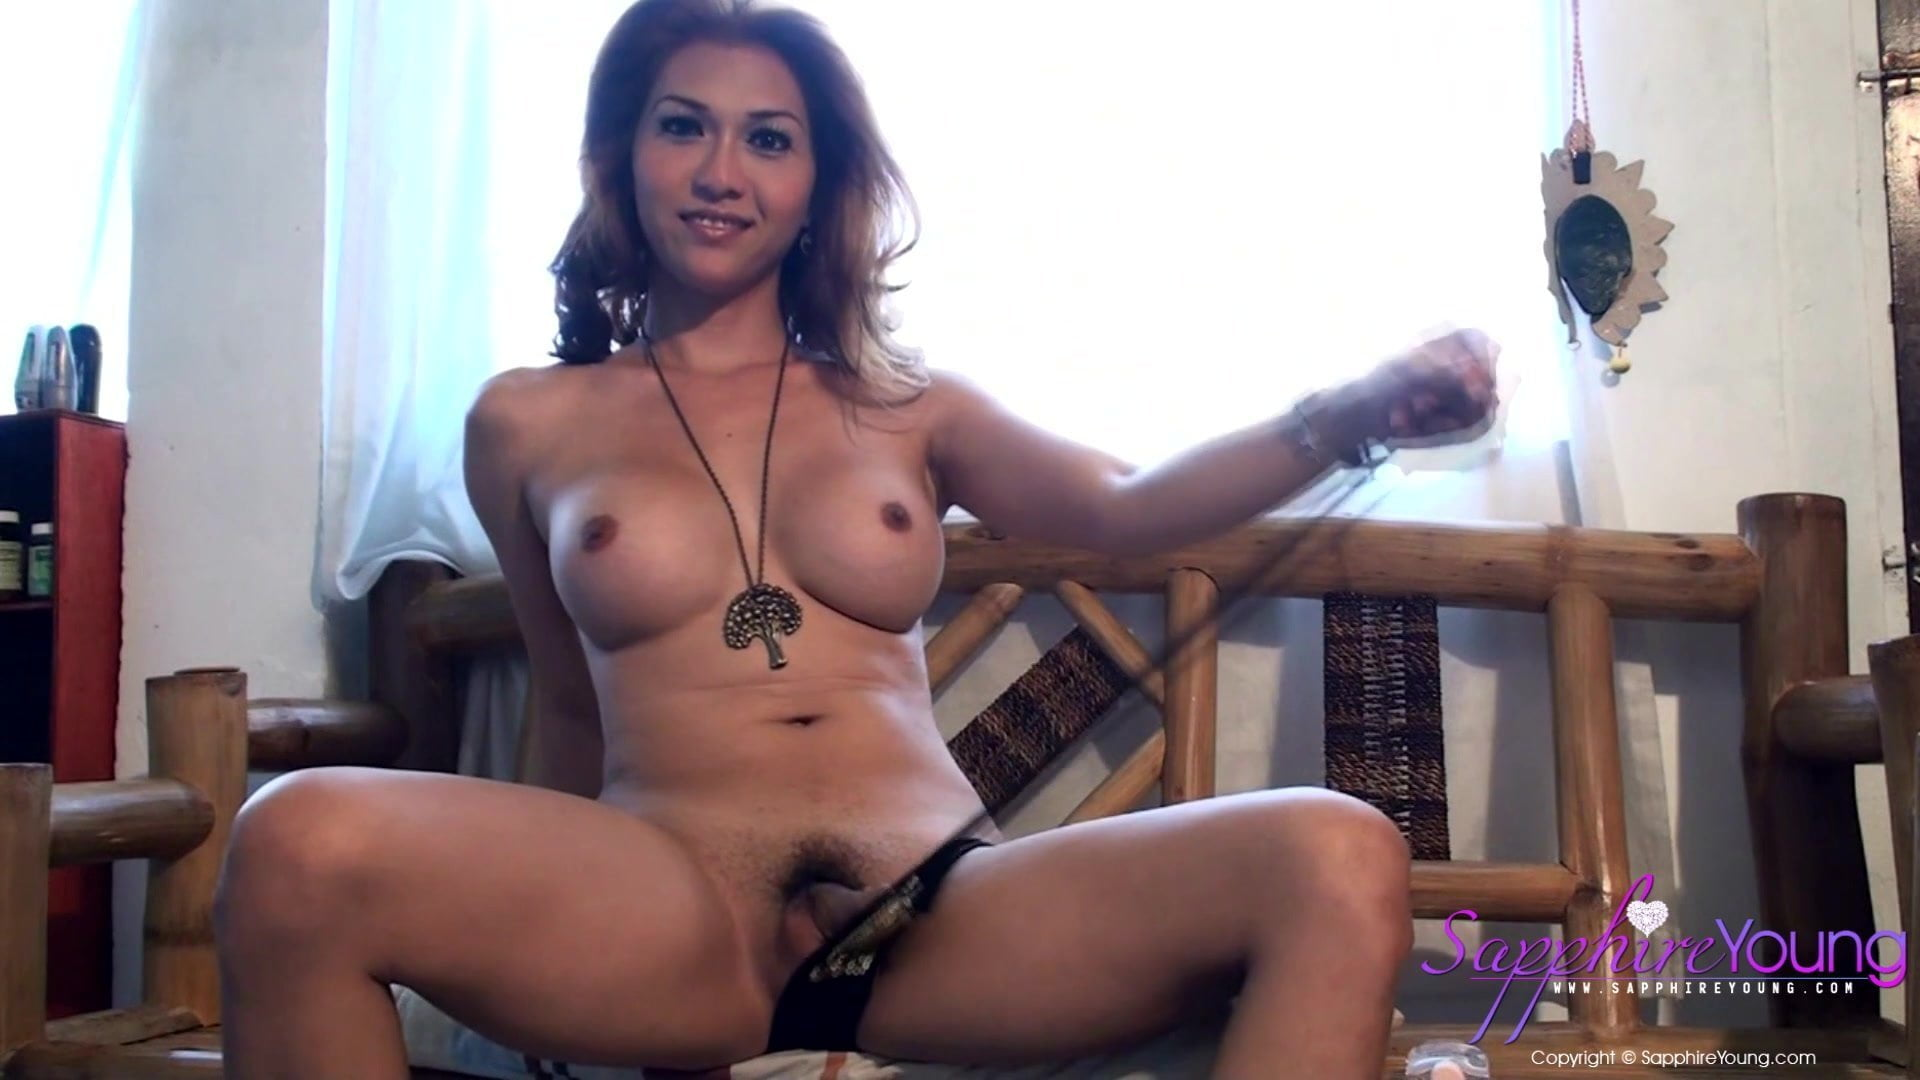 Male Nude Images Transgender girls sex with girls